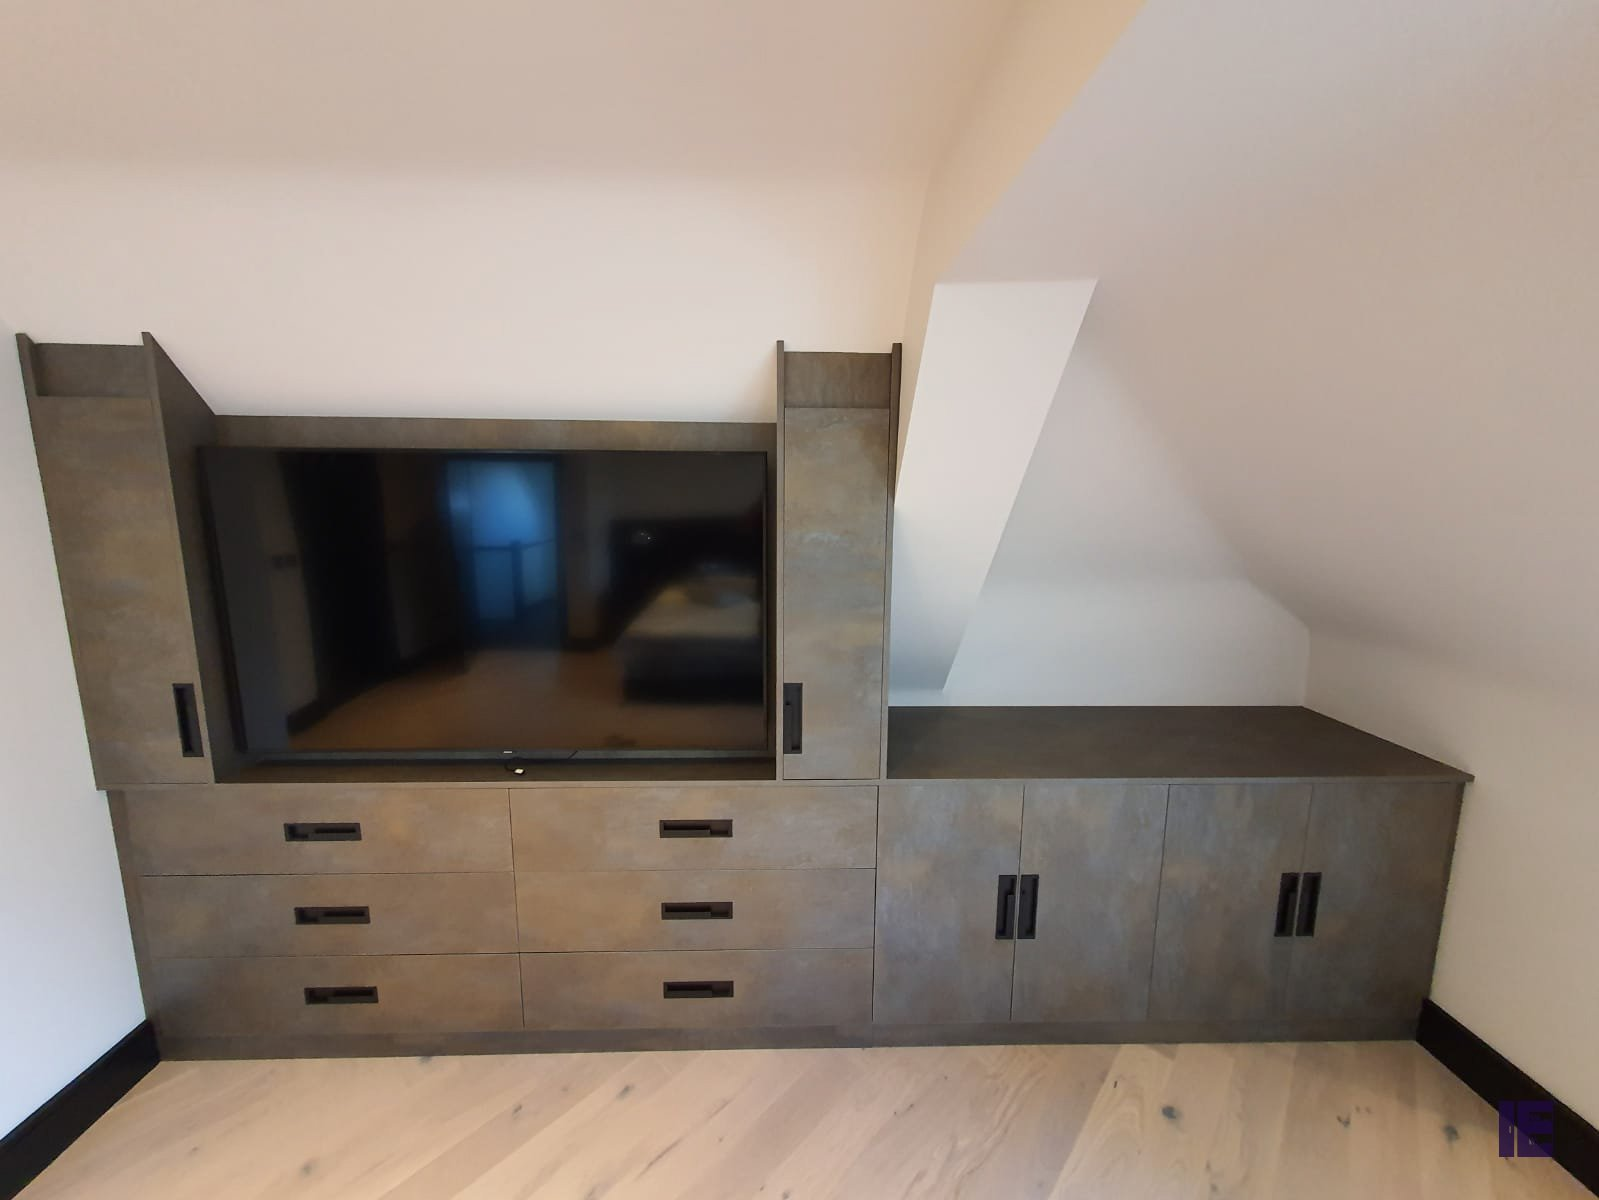 Bespoke Furniture, Loft fitted TV Area with CNC handle